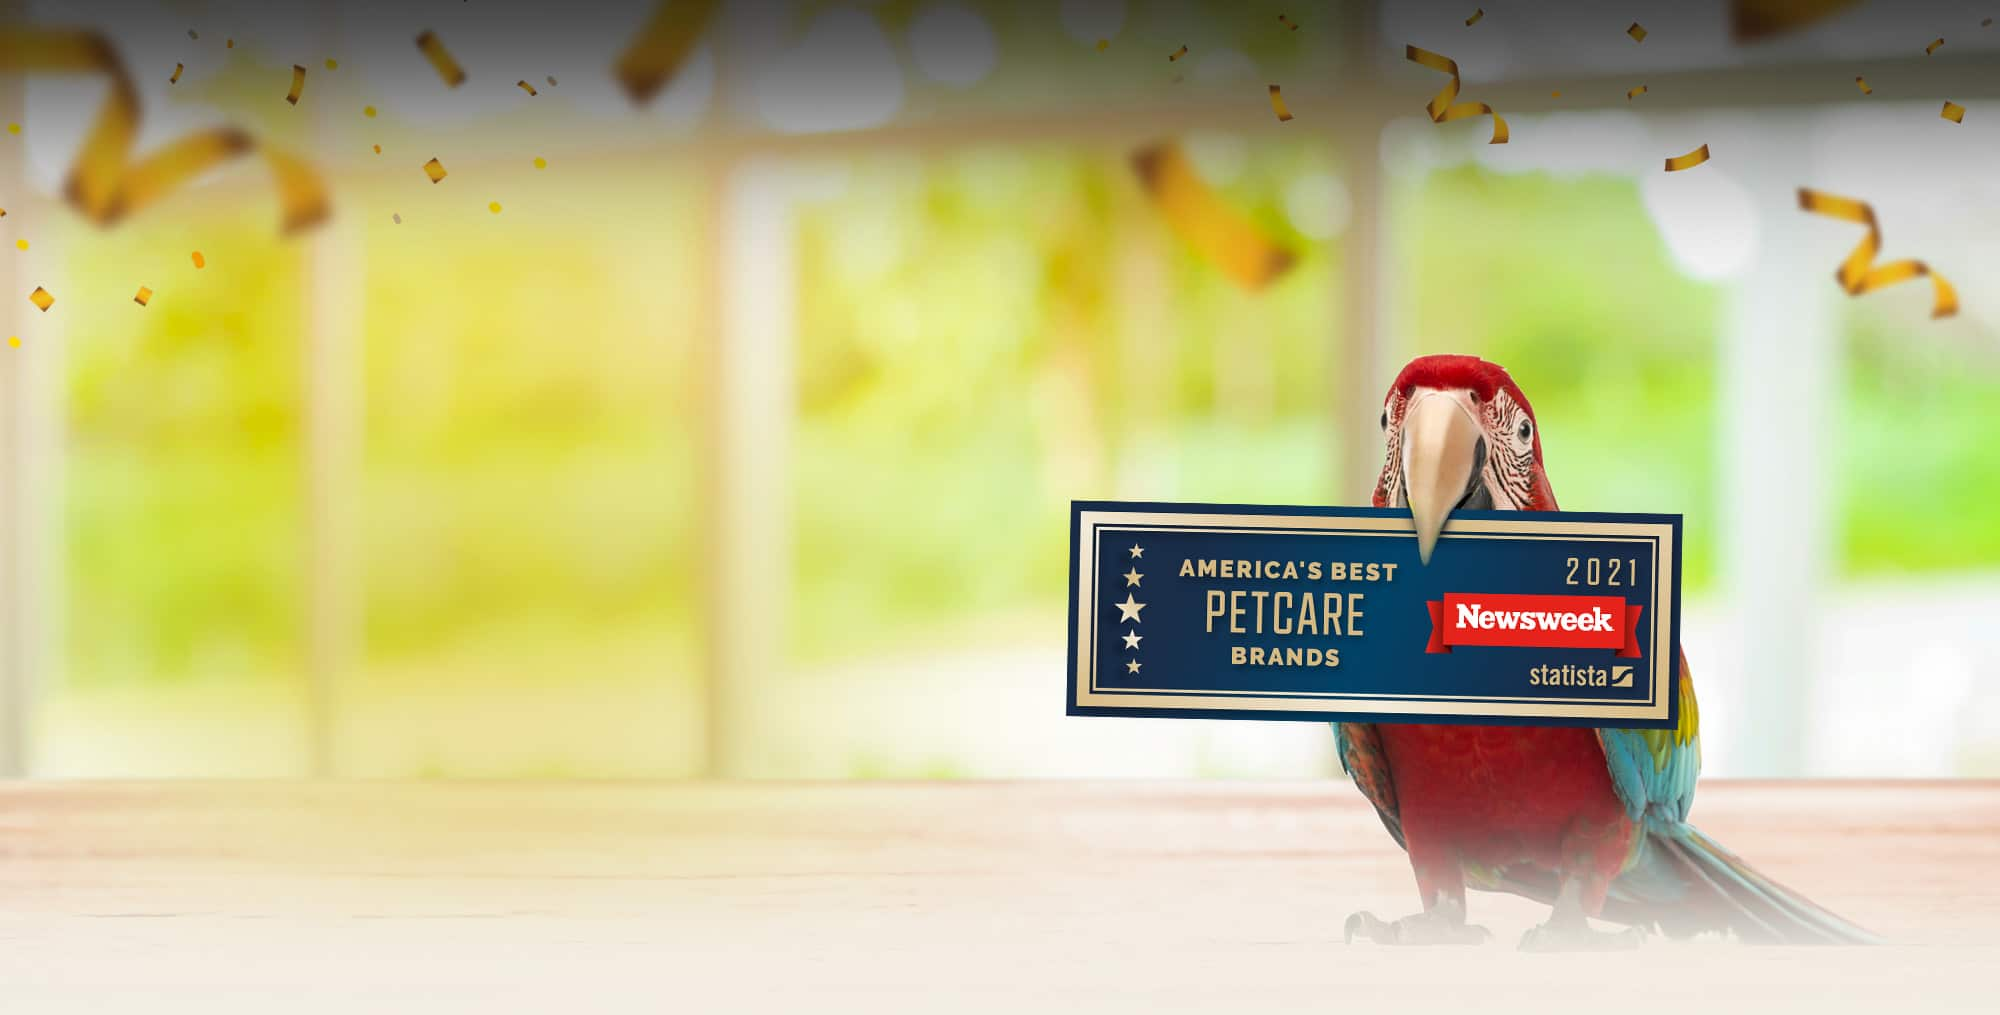 macaw holding sign about Newsweek's America's Best Petcare Brands